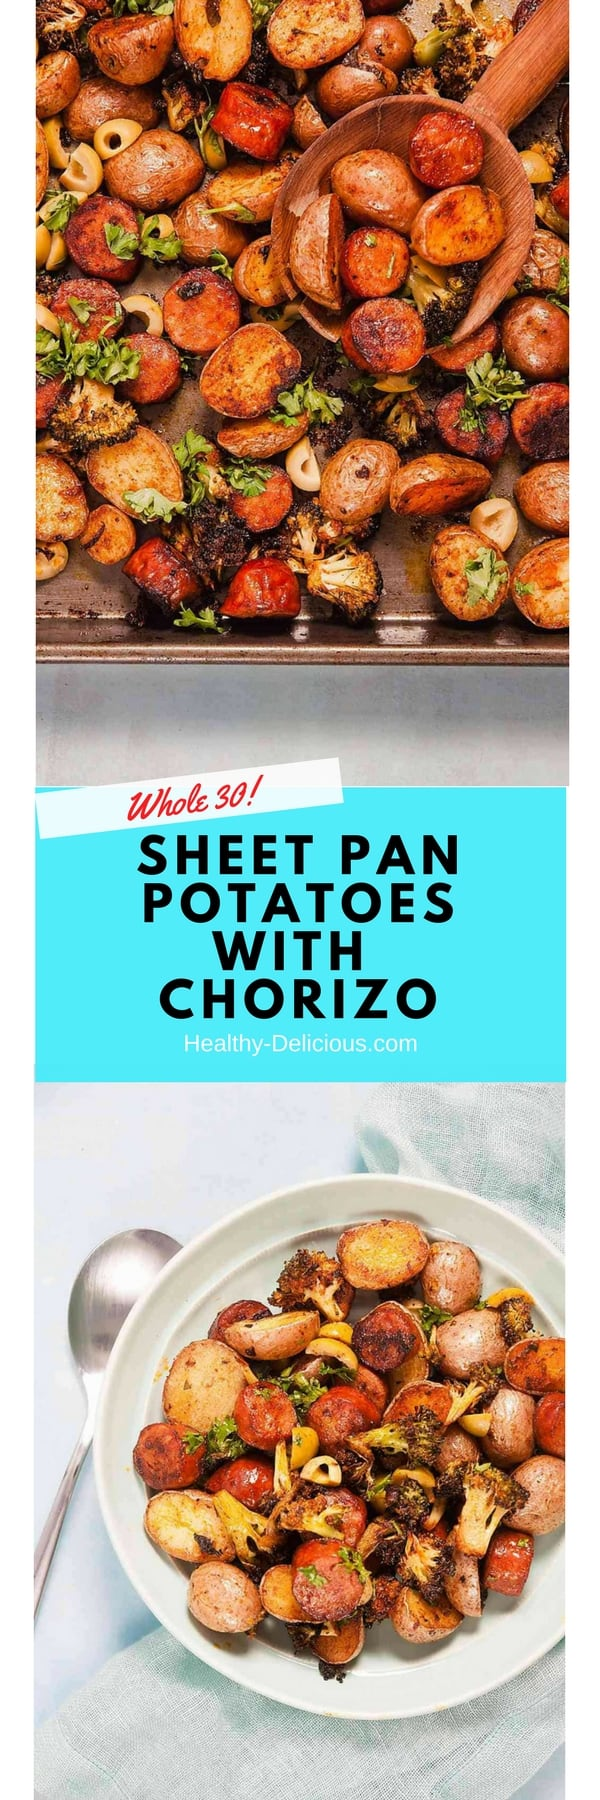 Sheet Pan Spanish Style Potatoes with Chorizo (Whole 30) 1